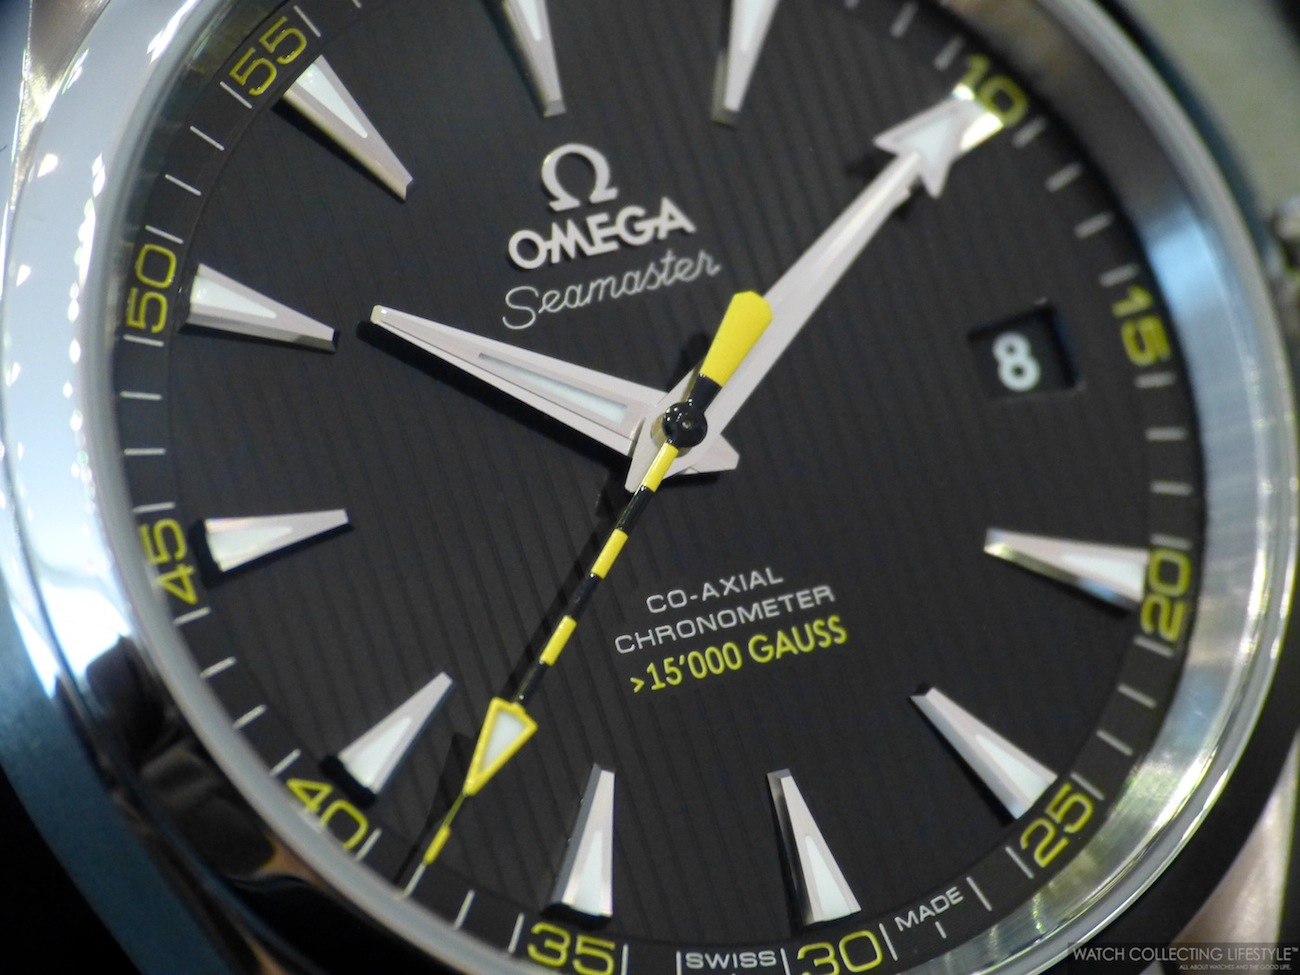 Insider Omega Seamaster Aqua Terra 15 000 Gauss A Truly Anti Magnetic Watch With A Display Case Back Watch Collecting Lifestyle